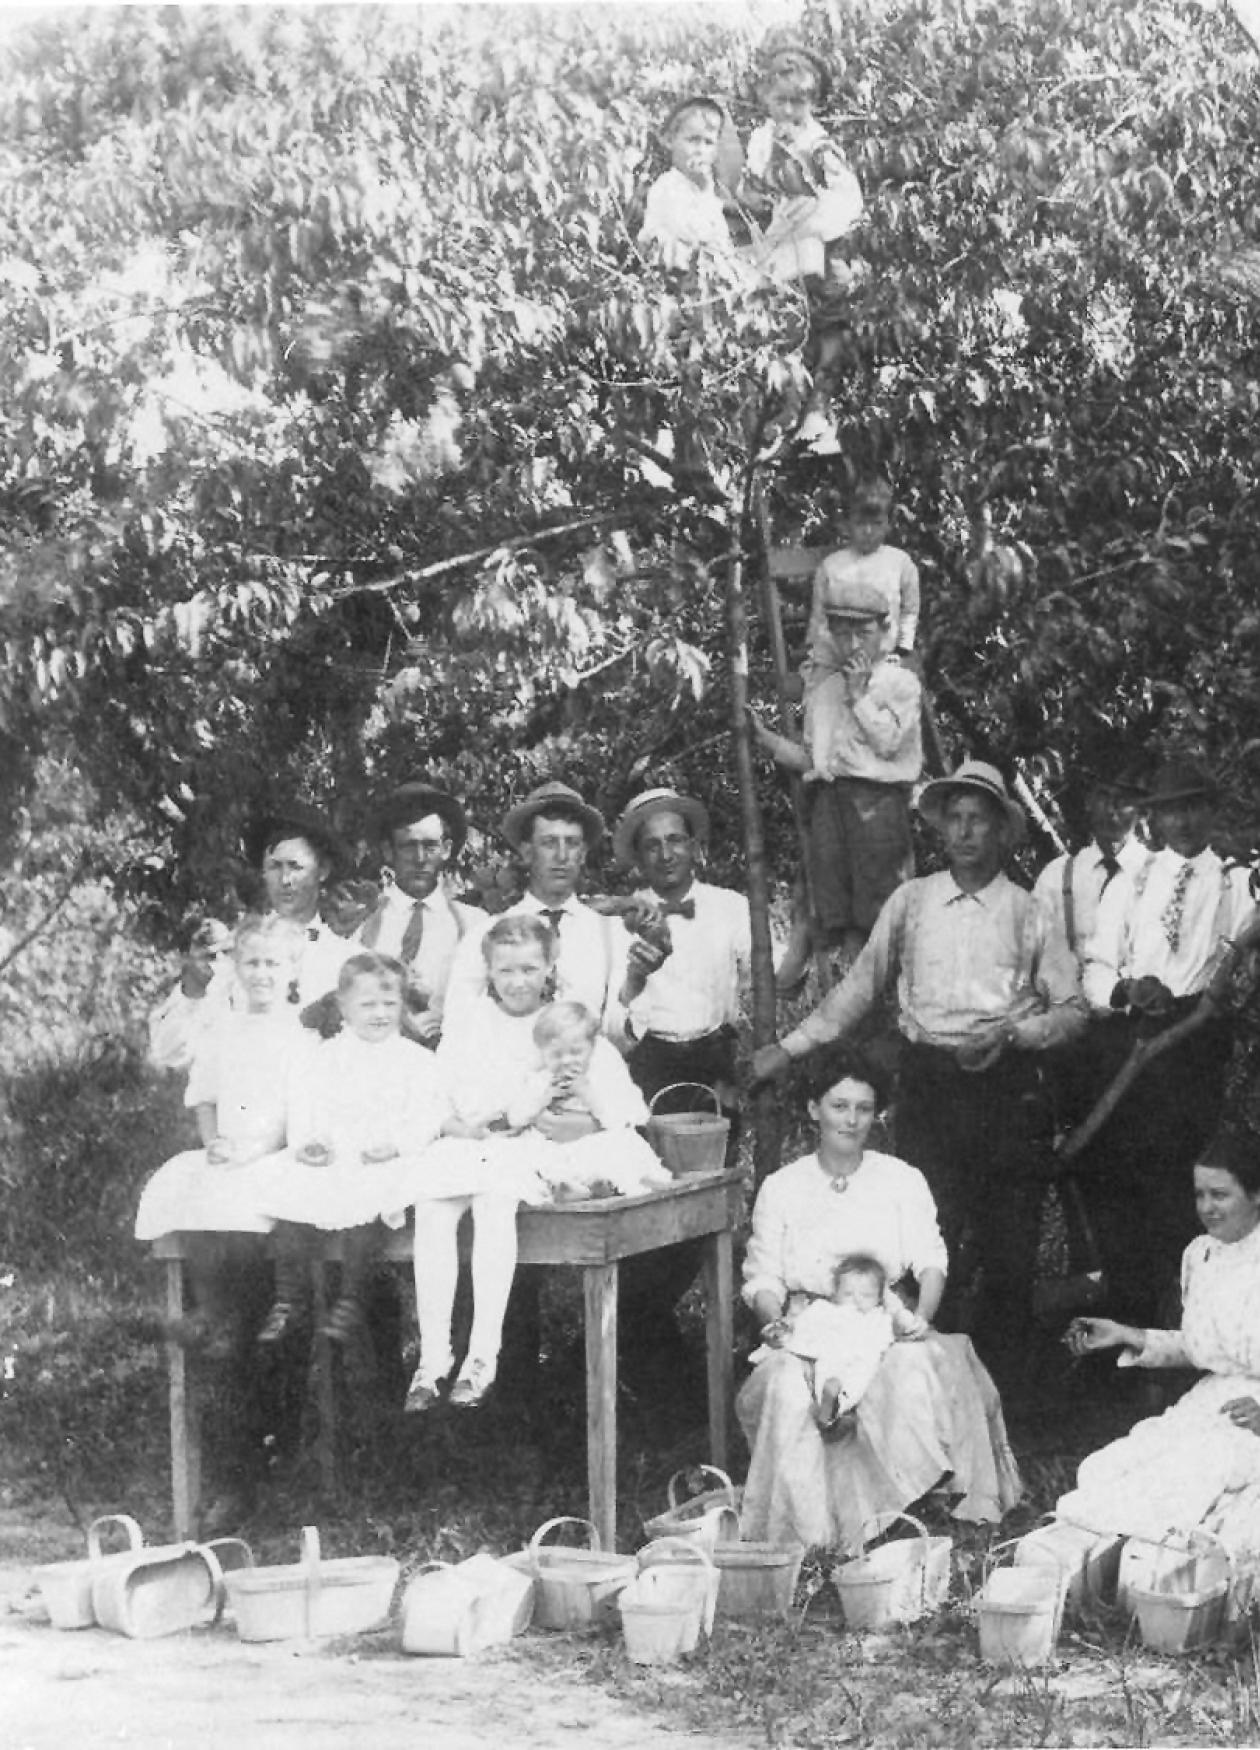 Family, all dressed in white, sitting and standing in a stand of trees